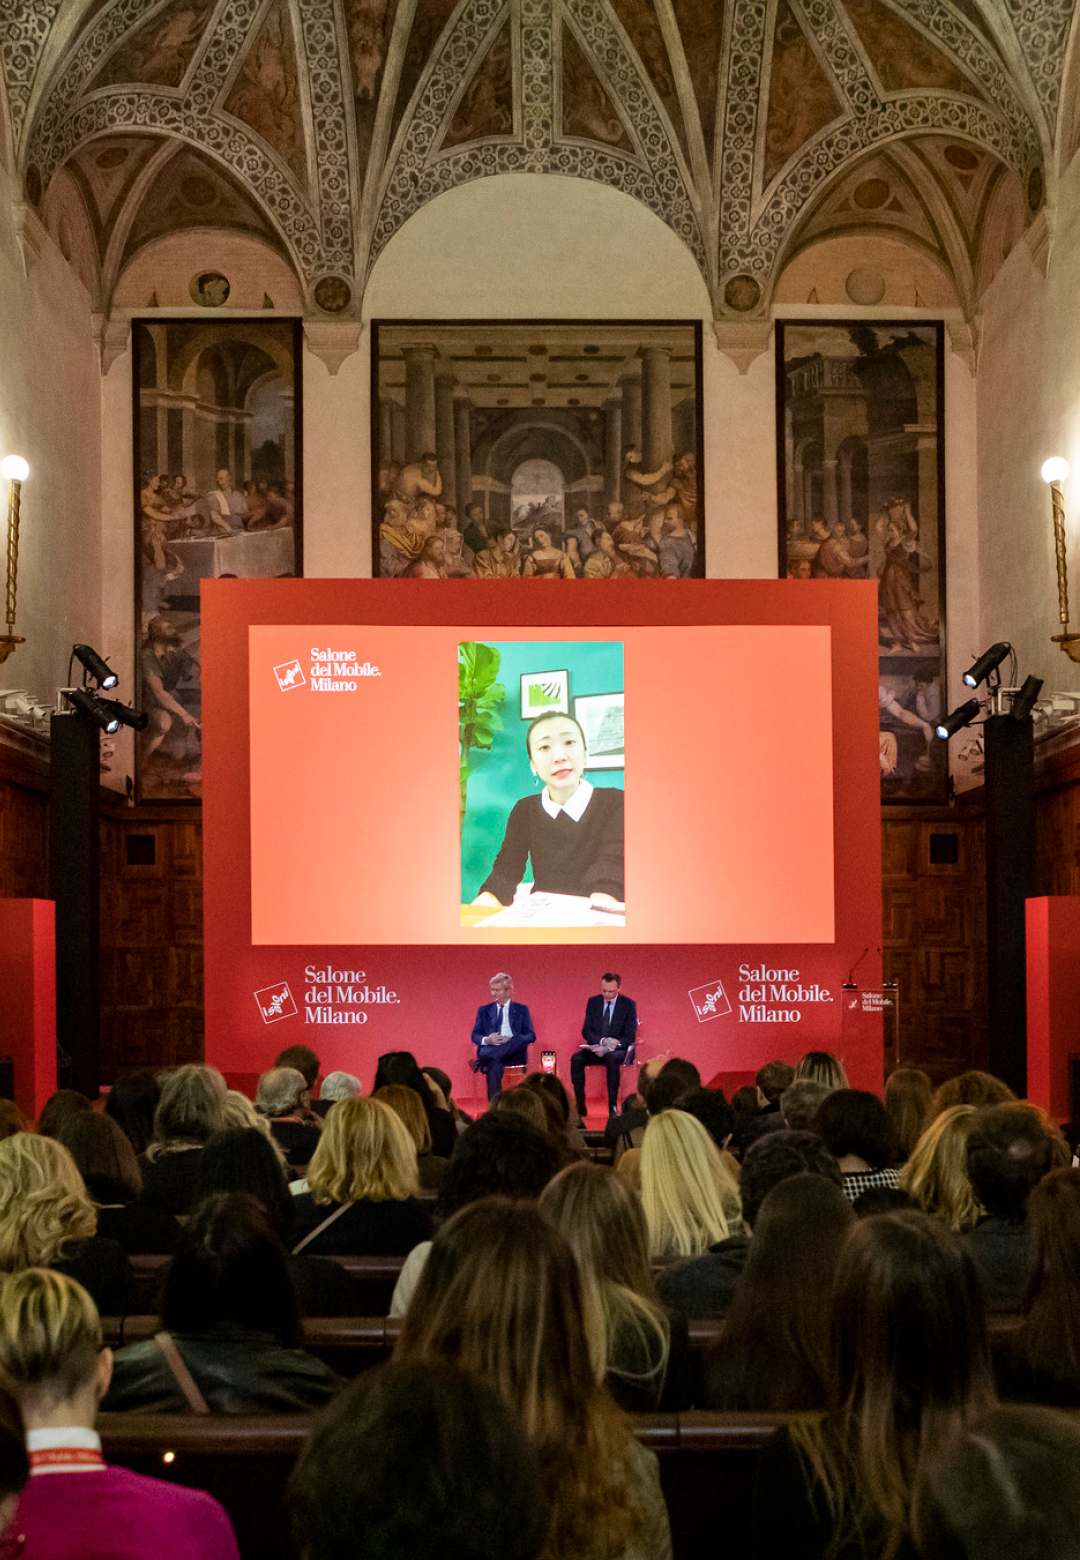 A glimpse from the Salone del Mobile Milano 2020 press conference held earlier this month | Salone del Mobile 2020 | Coronavirus | STIRworld